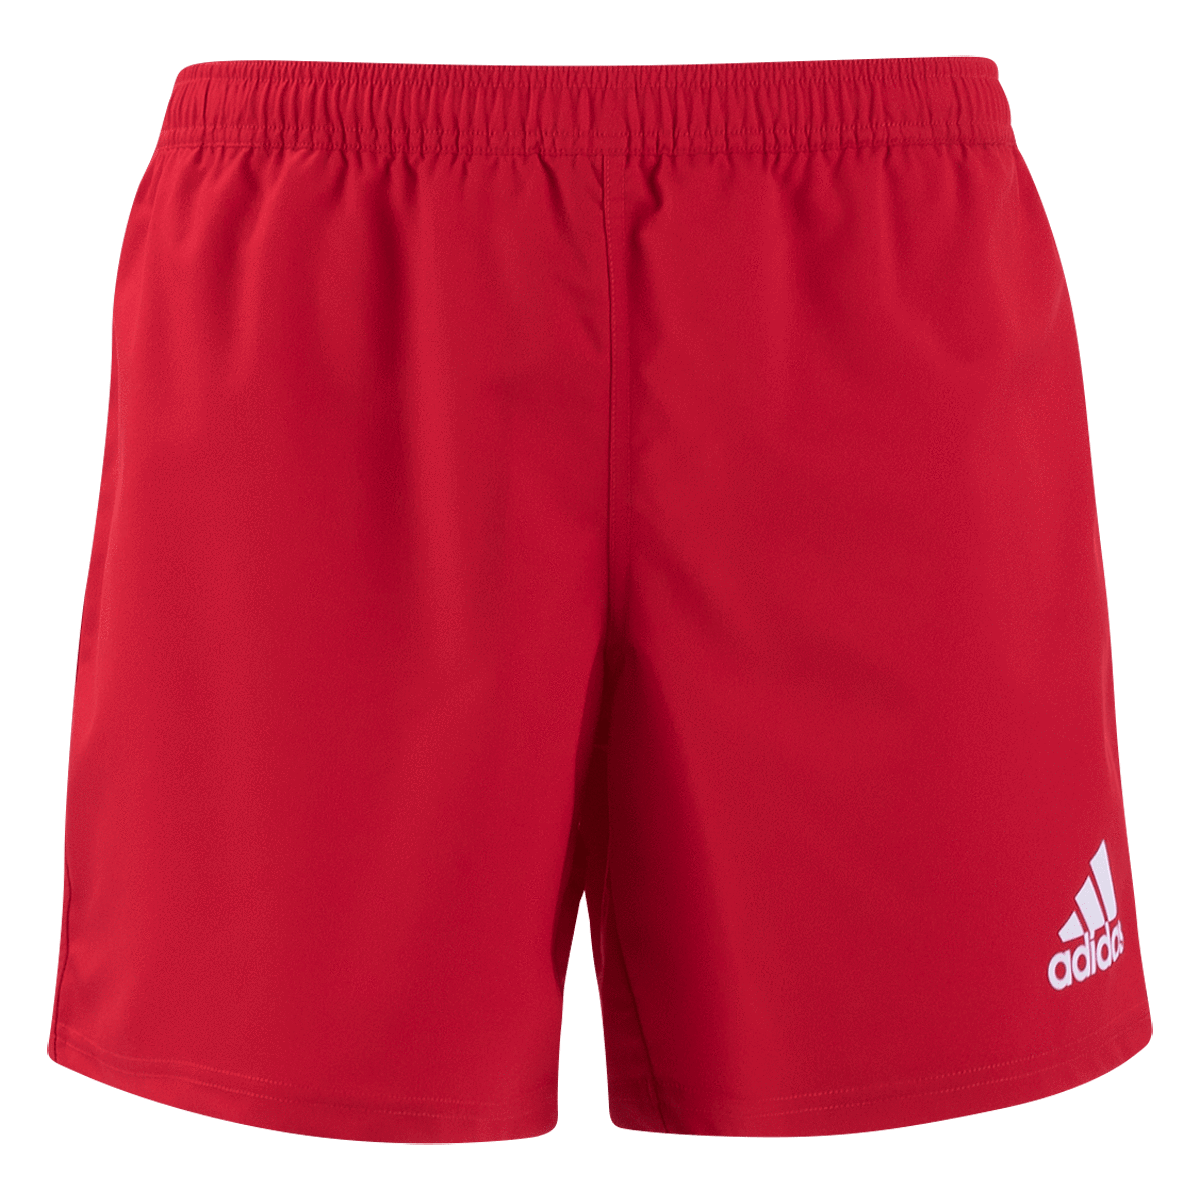 adidas 19 Red/White 3 Stripe Shorts